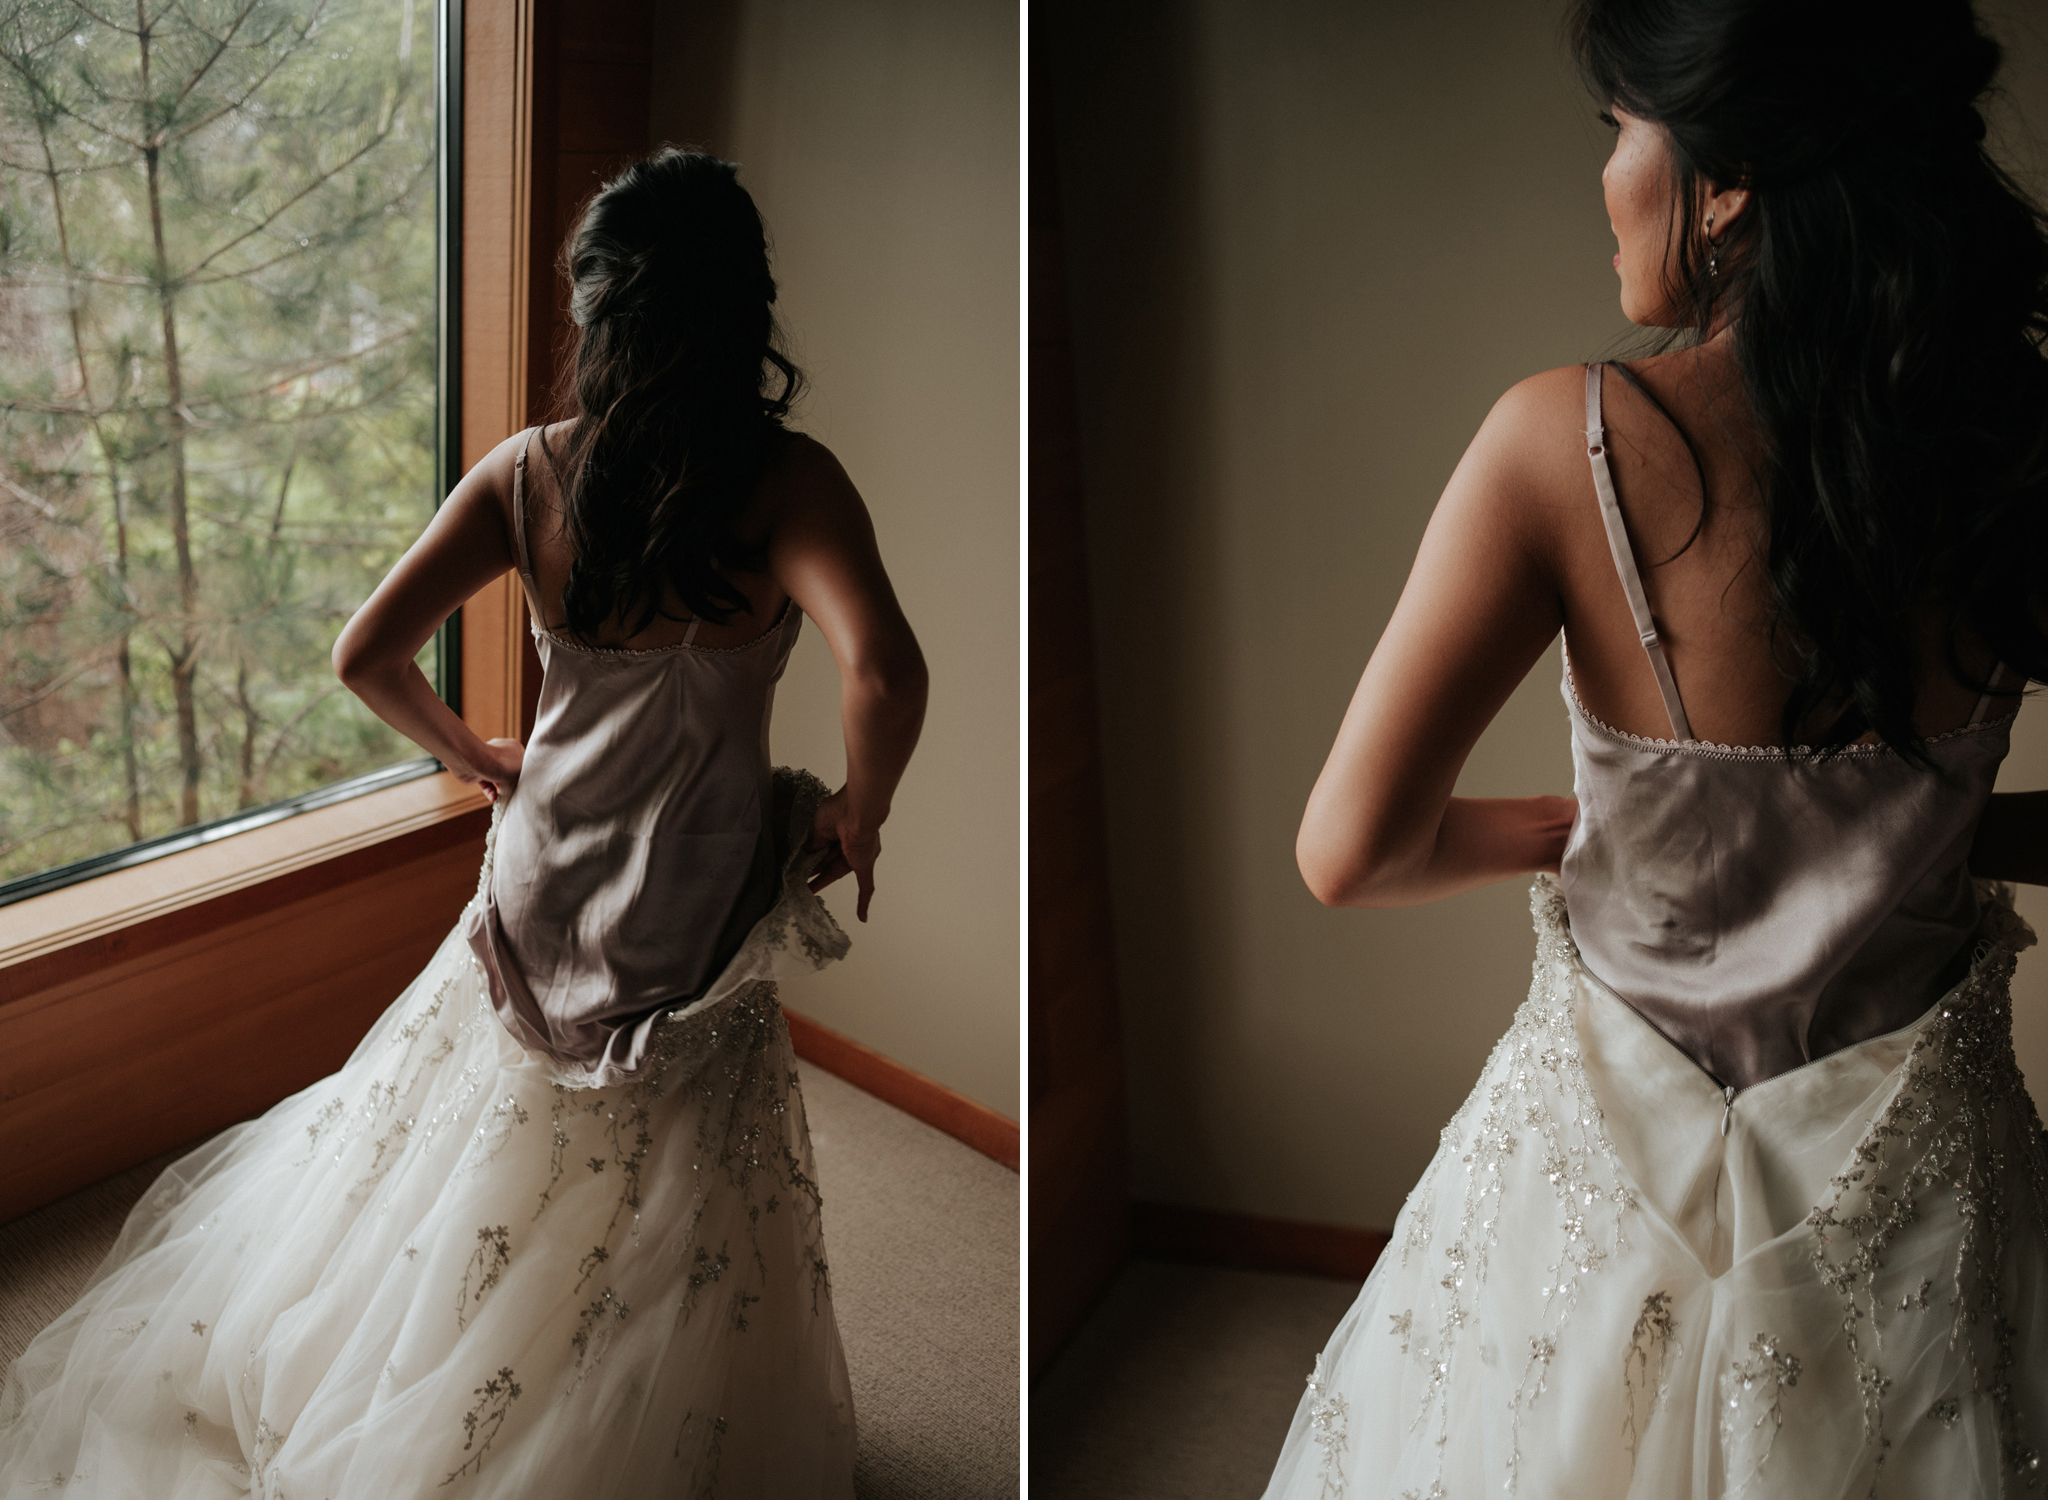 bride stepping into dress by window at Wickaninnish Inn for her Tofino Elopement